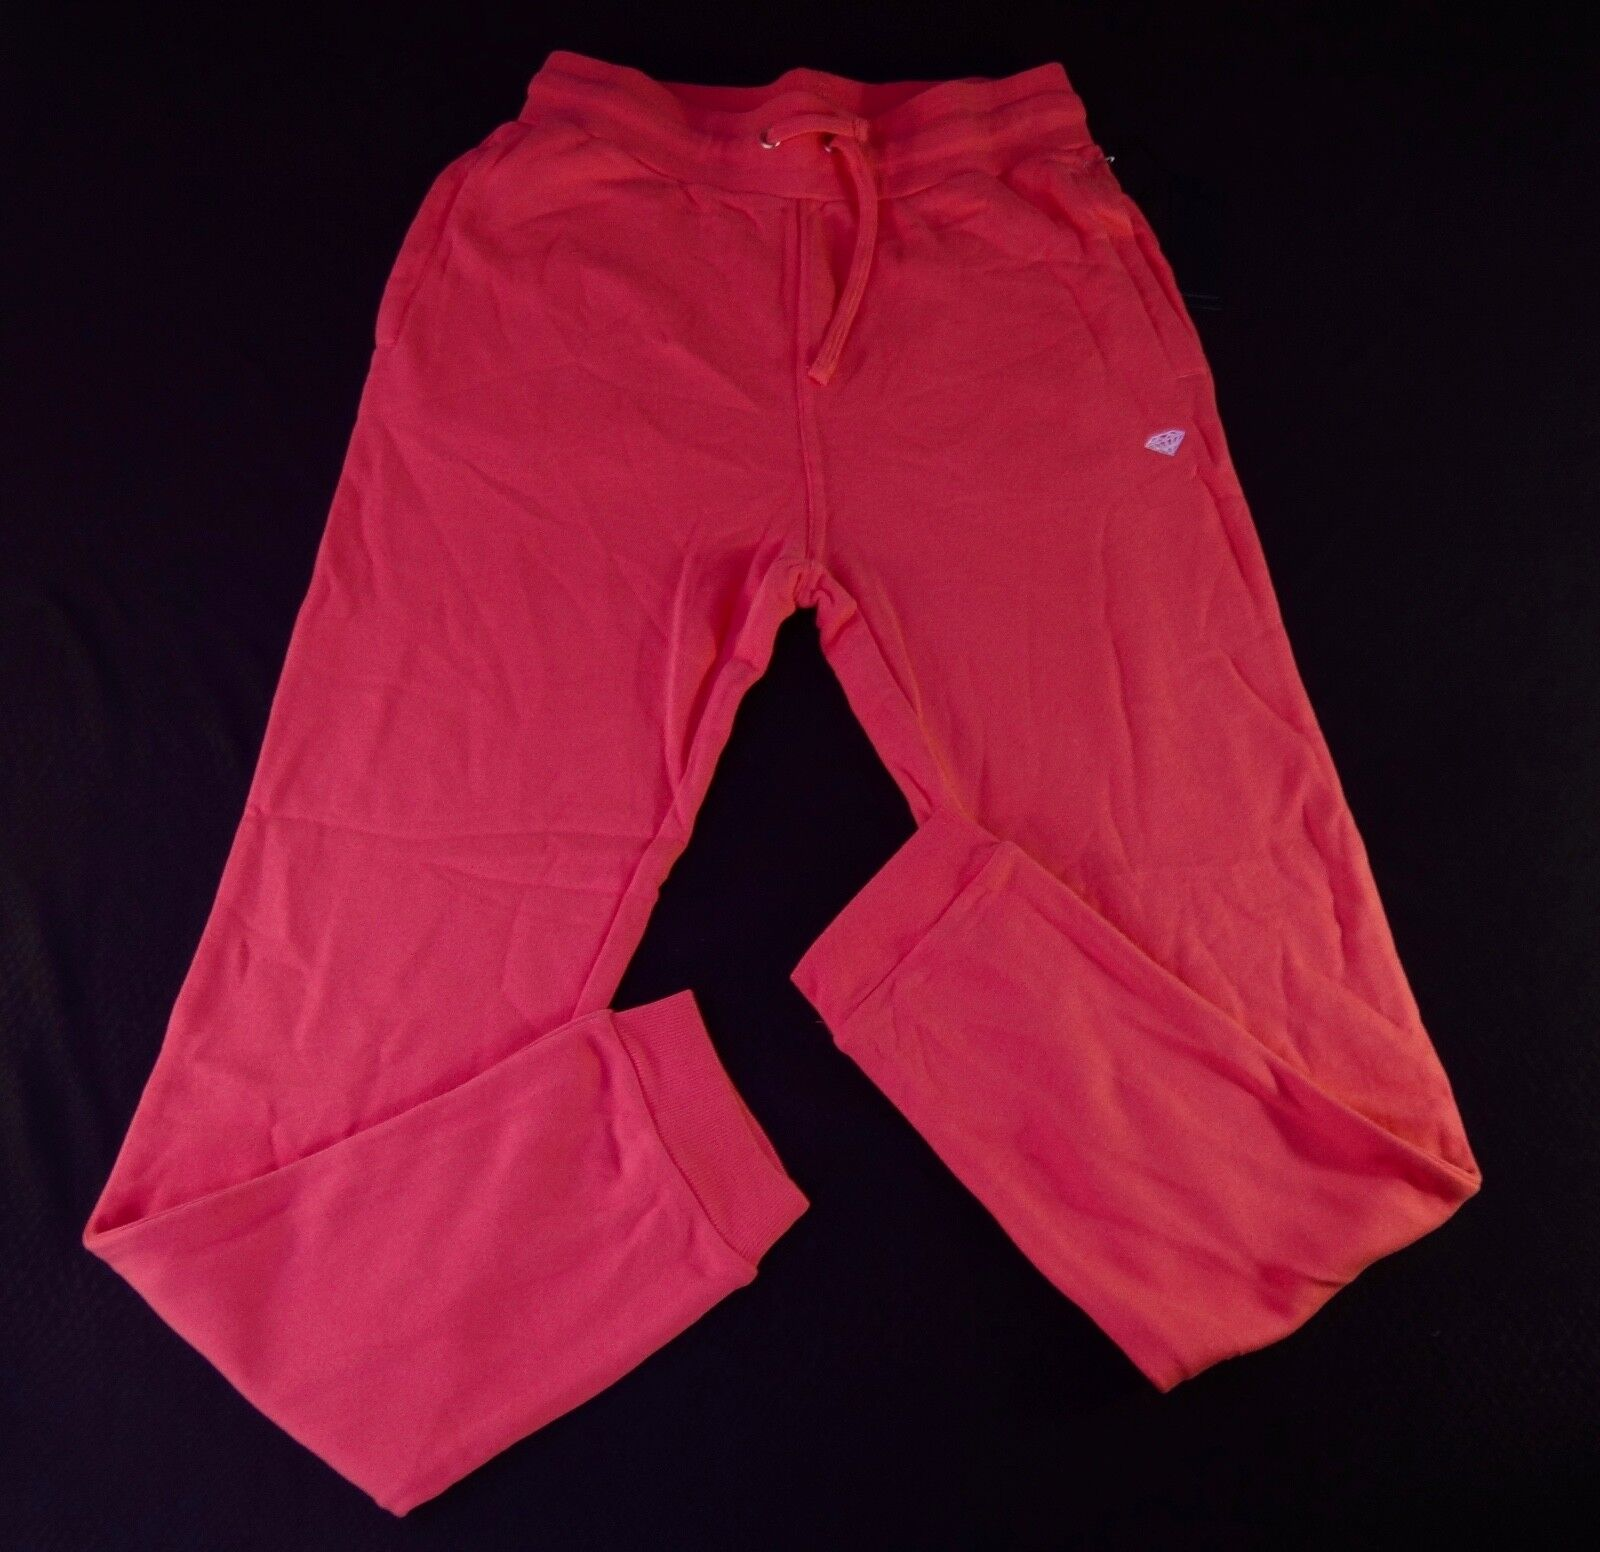 NEW RSHRT-71 DIAMOND SUPPLY CO. TEAM MENS PAVILION TERRY RED JOGGERS SWEATPANTS